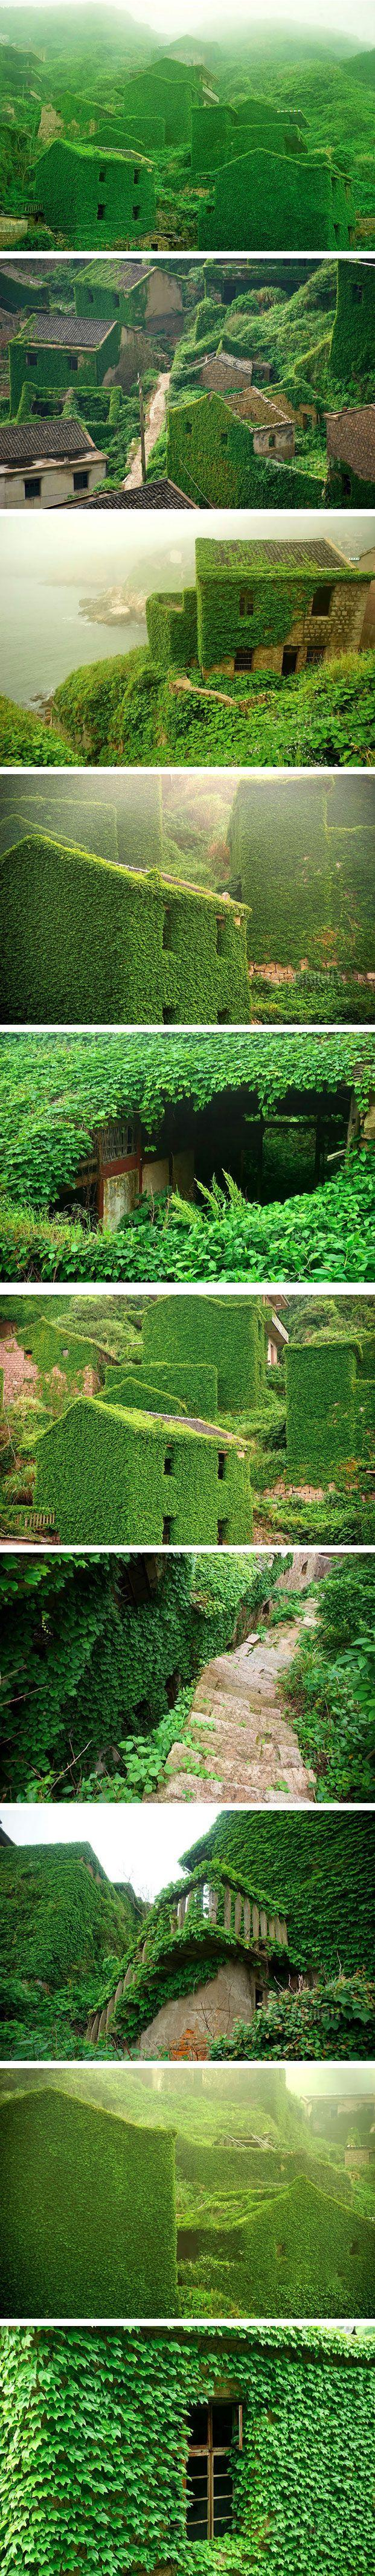 زفاف - Photographer Captures Amazing Images Of An Abandoned Chinese Fishing Village Being Reclaimed By Nature